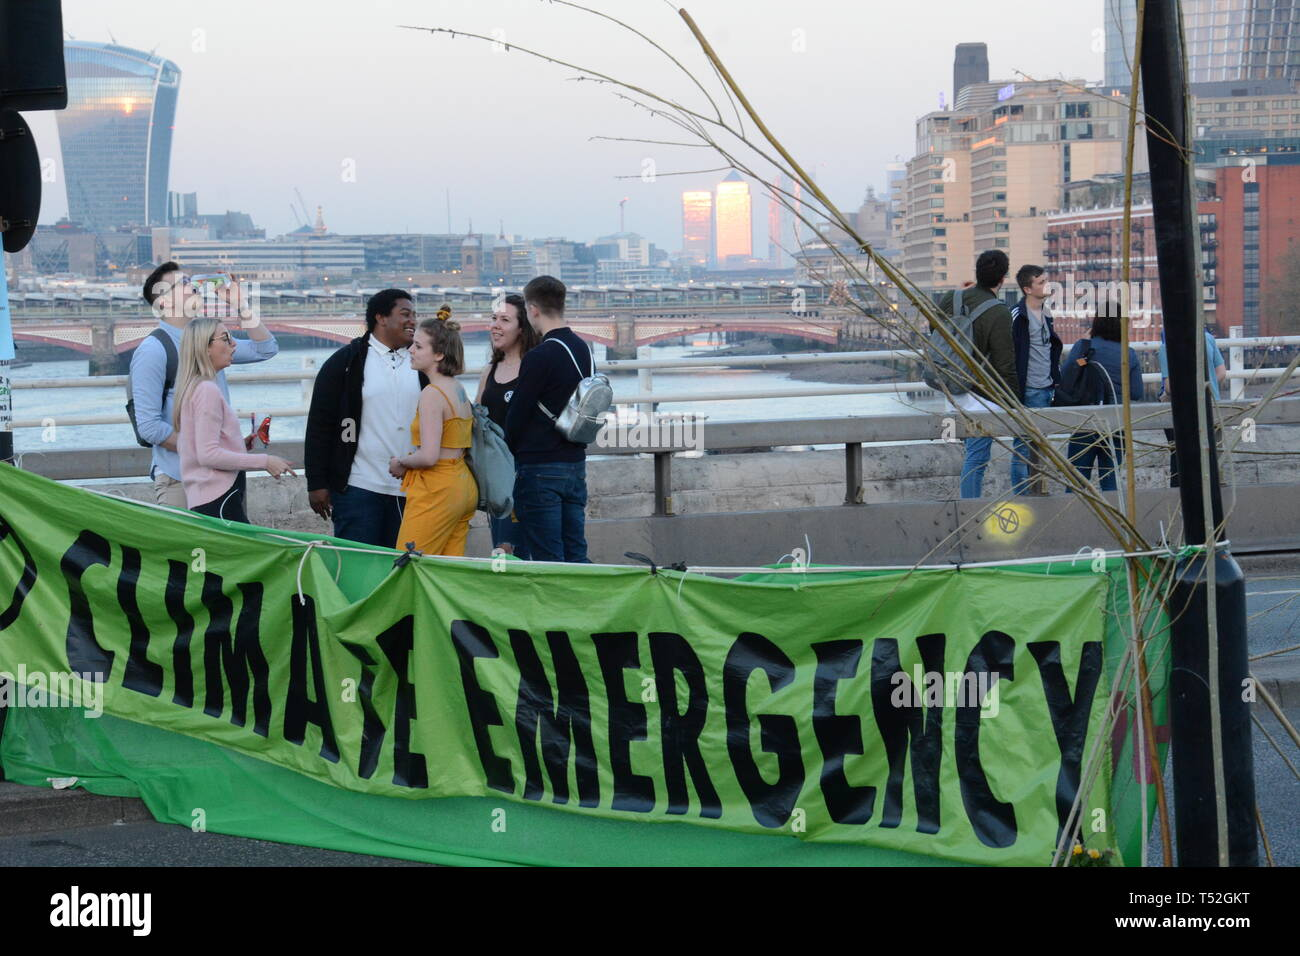 Extinction Rebellion  maintain their stranglehold on Central London with their relatively small numbers - 19th April 2019. Stock Photo